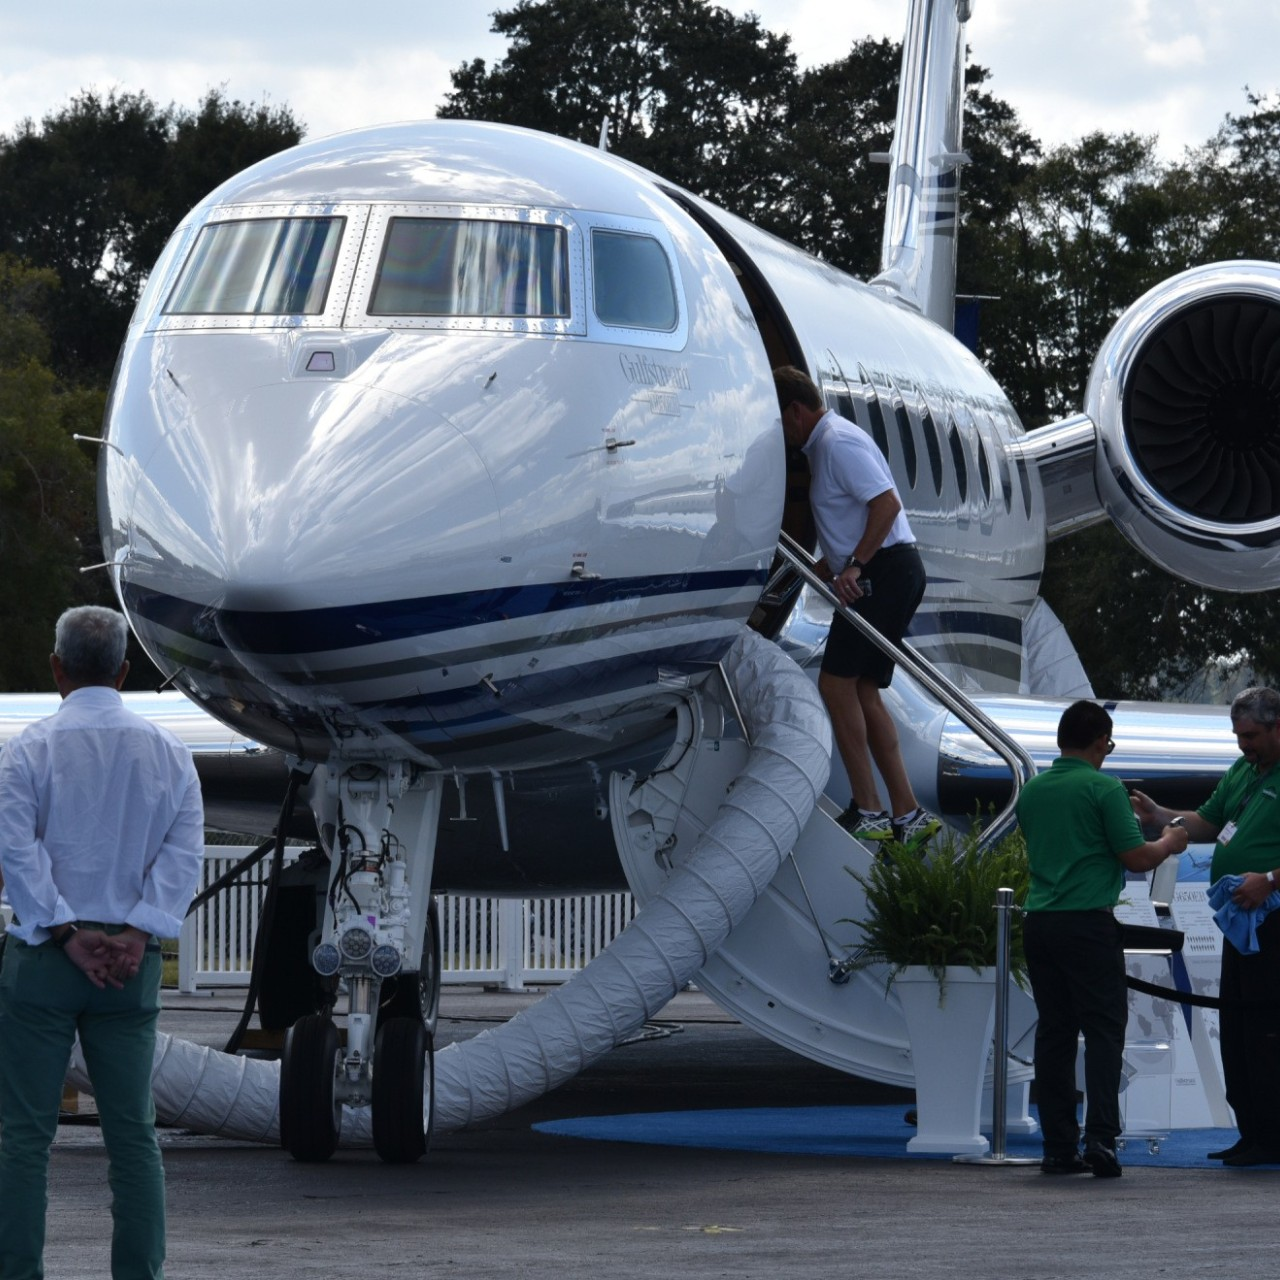 Peek inside the luxury Boeing tailored for the world's richest